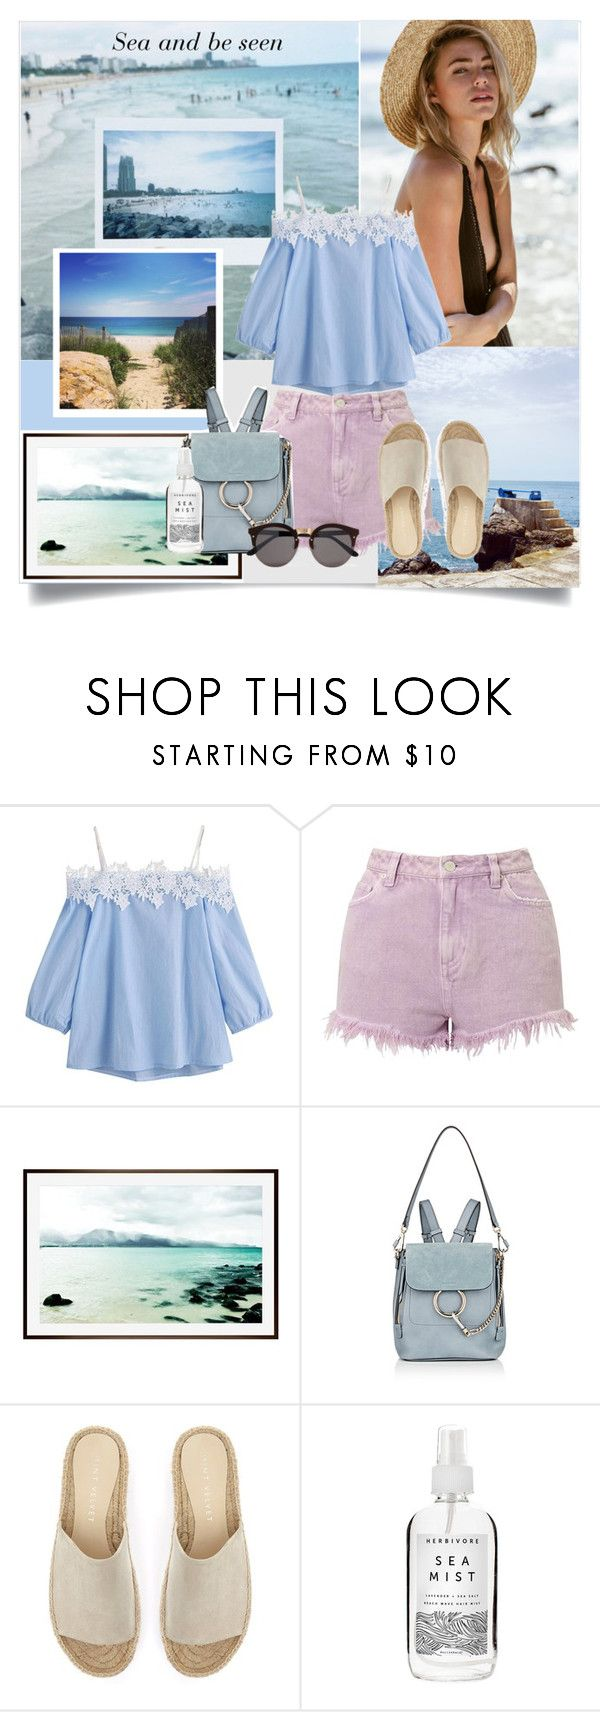 """Sea and be Seen !"" by fantasy-rose ❤ liked on Polyvore featuring Miss Selfridge, Pottery Barn, Chloé, Mint Velvet, Herbivore and Illesteva"